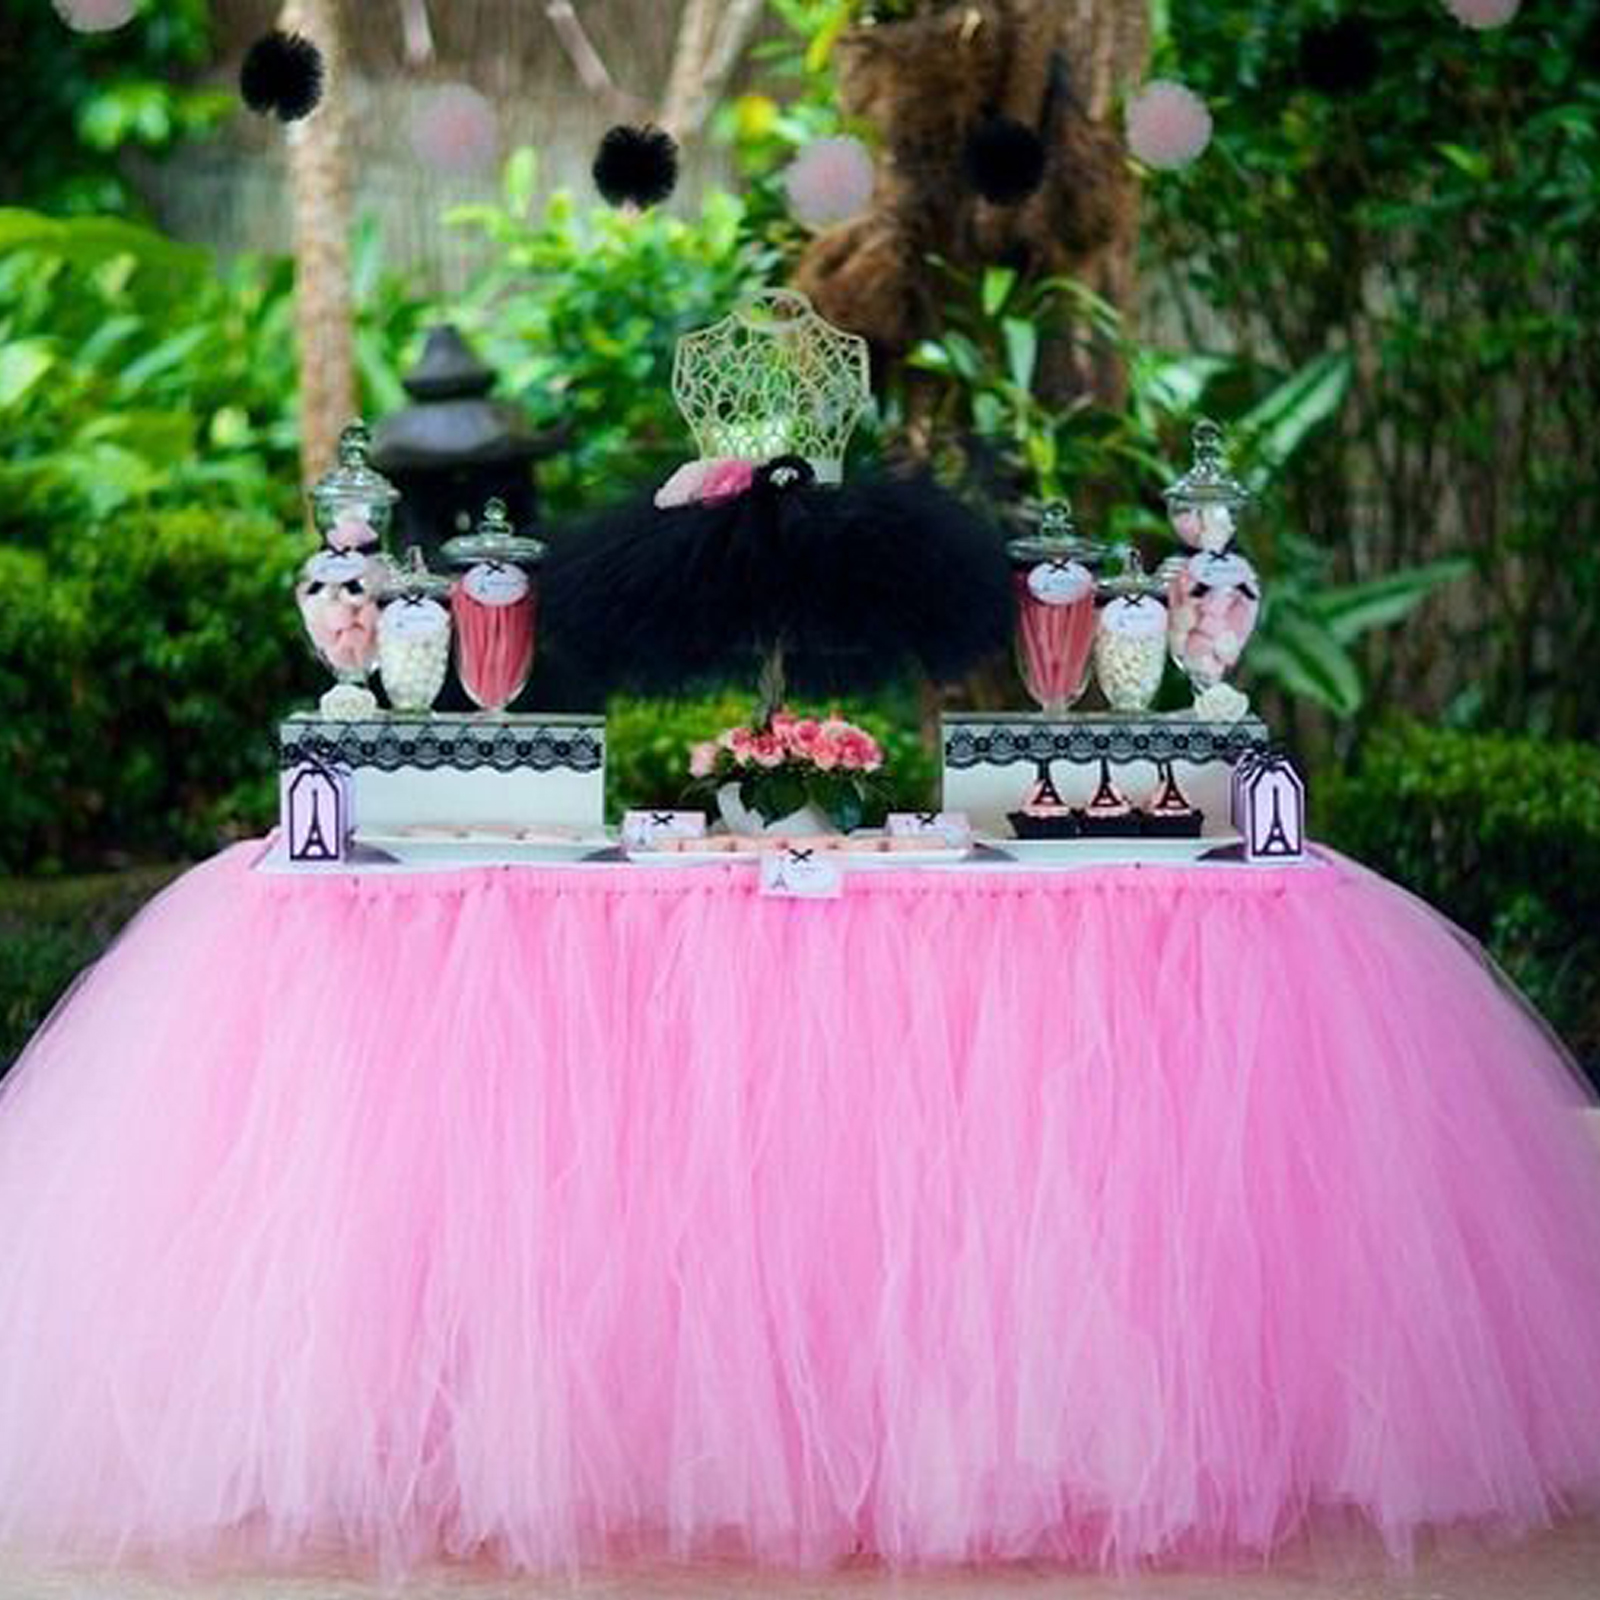 1pcs DIY Tulle Table Skirt Tableware Cloth For Birthday Baby Shower Banquet Party Wedding Table Skirting Home Decoration1pcs DIY Tulle Table Skirt Tableware Cloth For Birthday Baby Shower Banquet Party Wedding Table Skirting Home Decoration